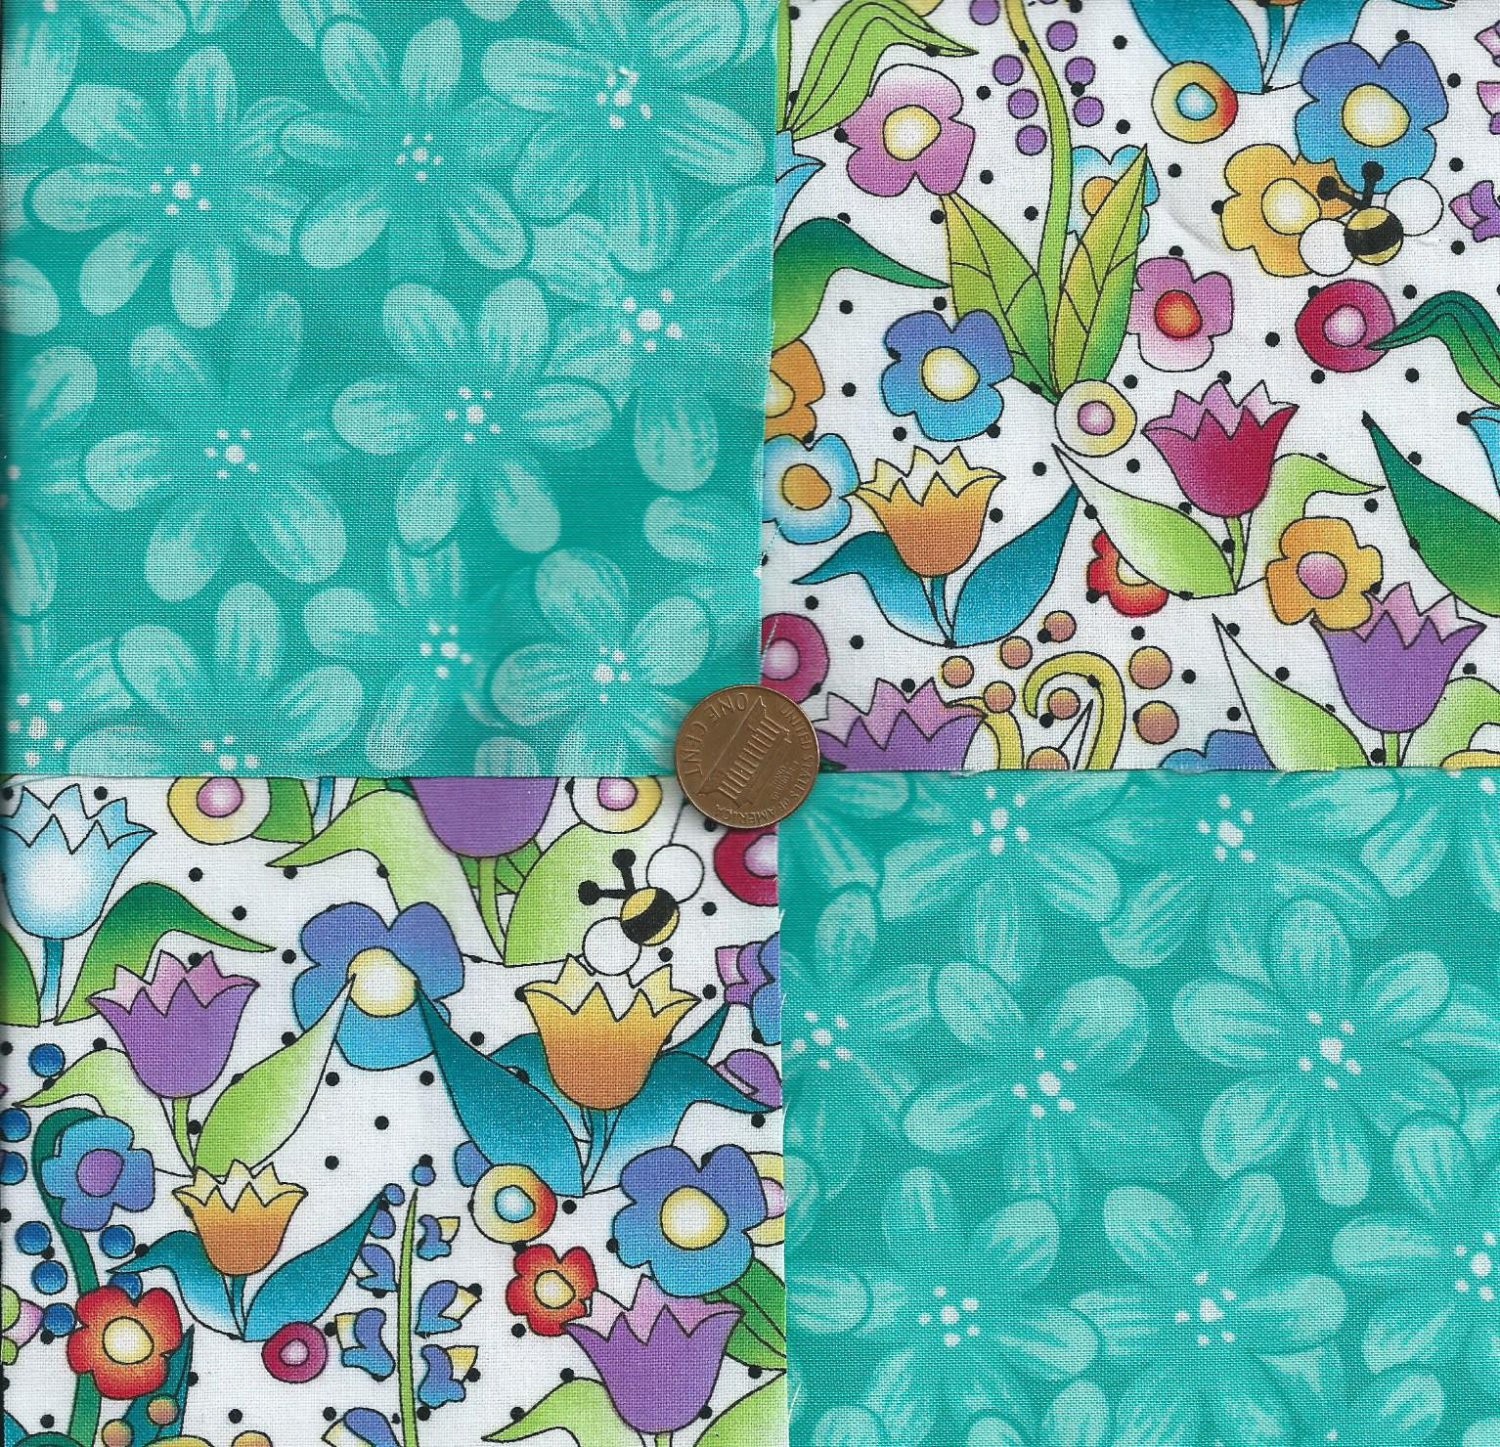 Bee Garden Up Close and Personal Cotton Fabric Craft Quilt Squares wz1